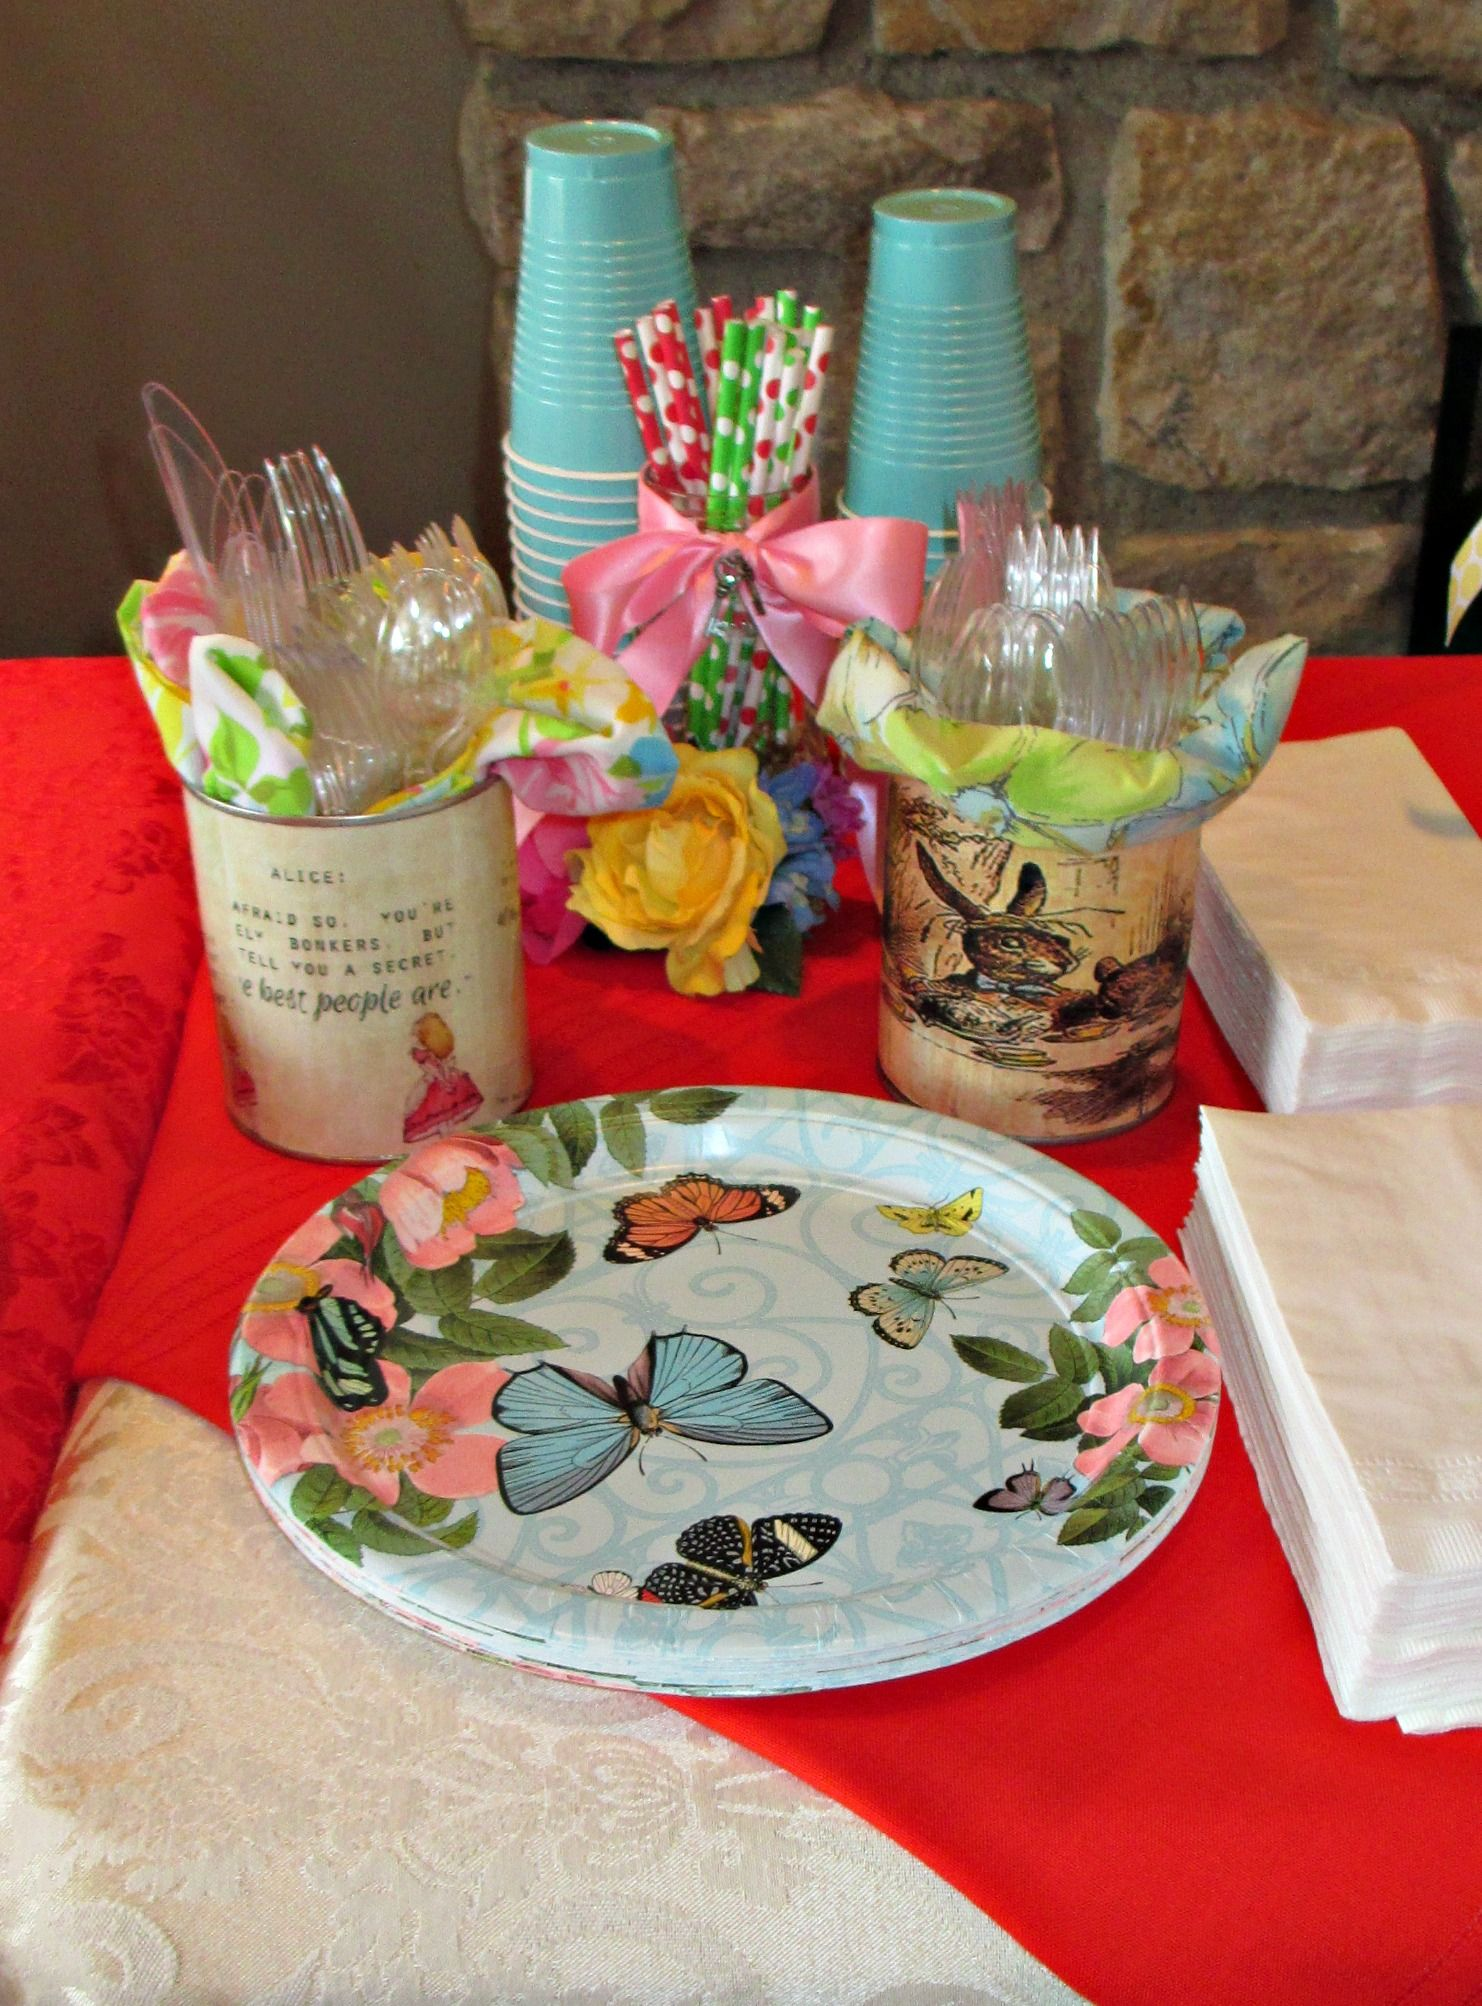 Birthday party table decorations ideas - Sweet 16 Vintage Alice In Wonderland Tea Party Birthday Party Table Decoration Ideas